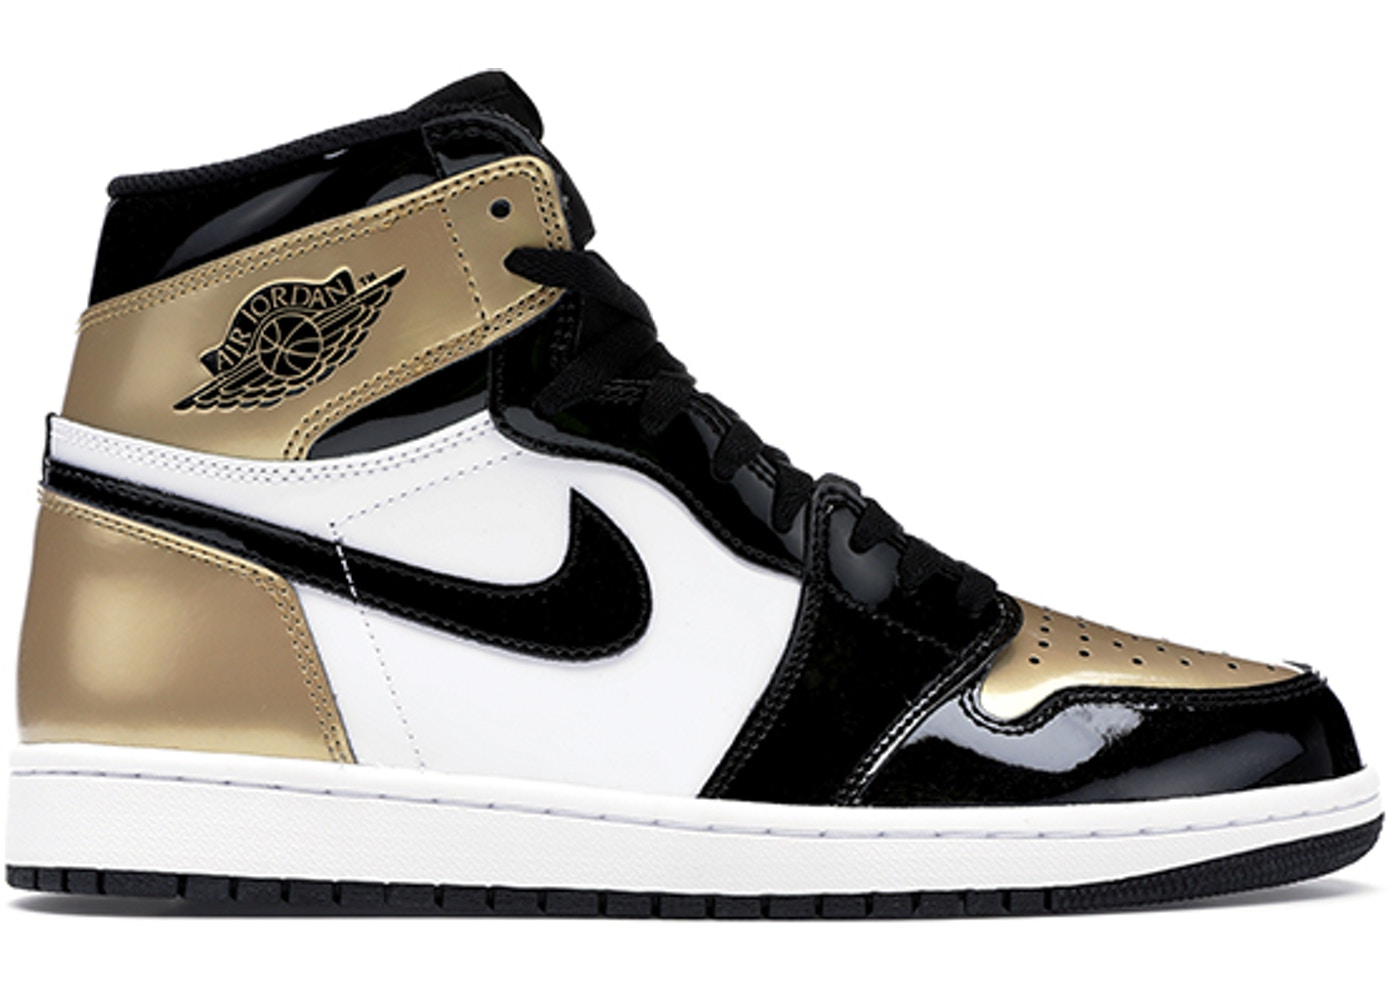 buy online 7e118 5c9f2 Buy Air Jordan 1 Shoes   Deadstock Sneakers